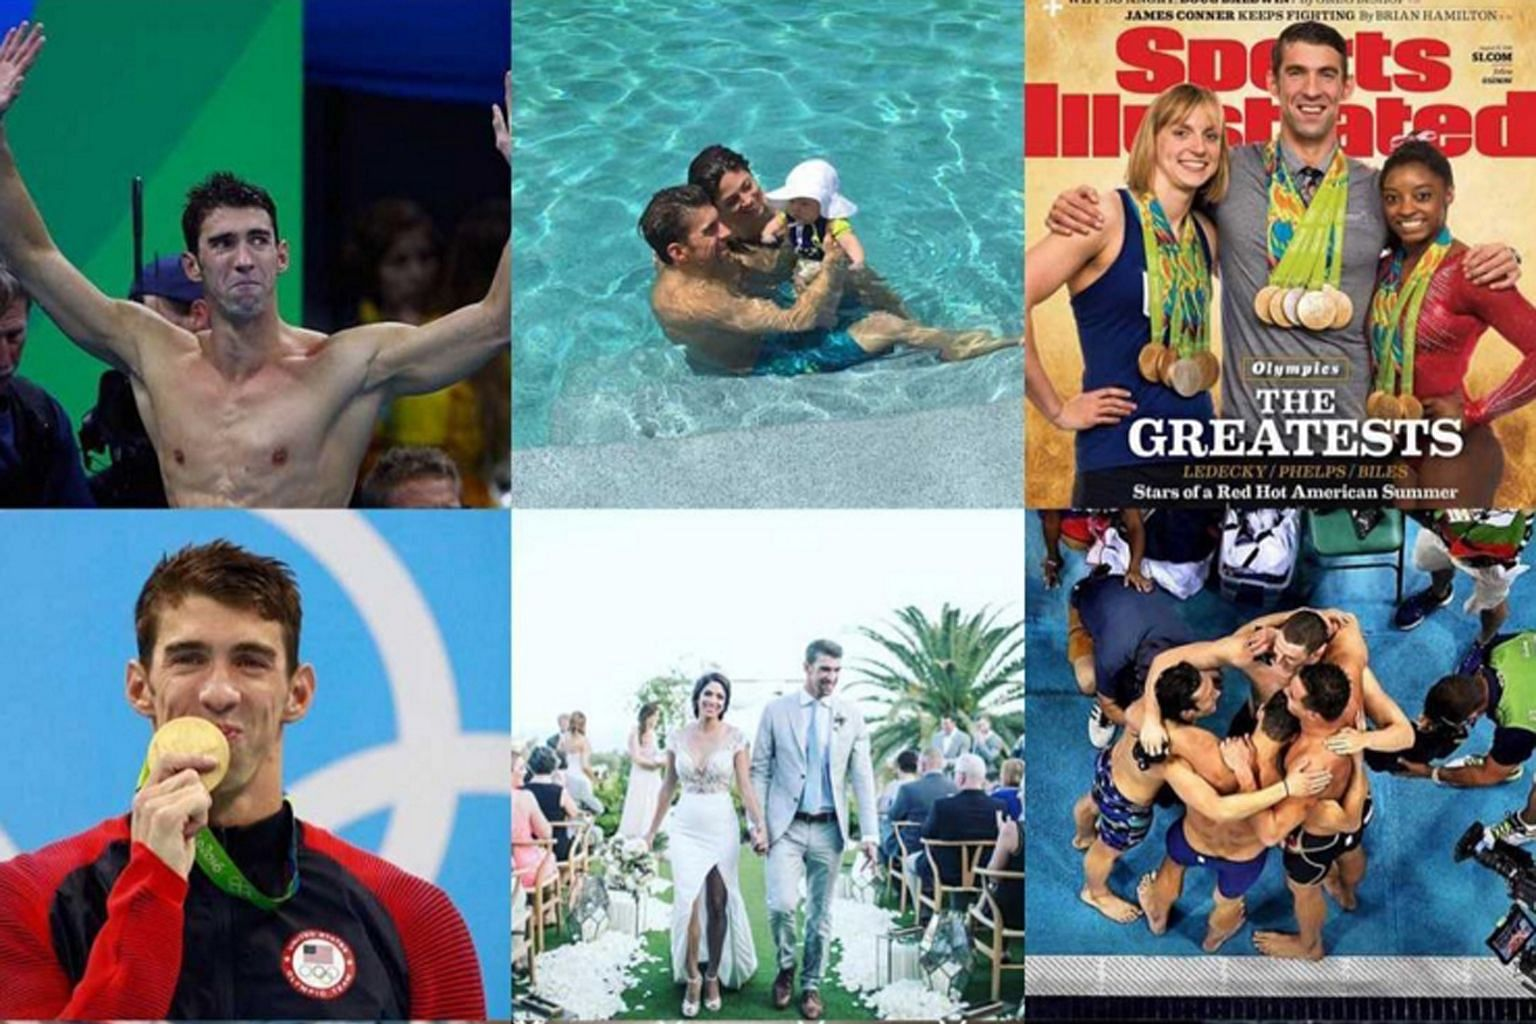 American swim legend Michael Phelps included a picture of himself and Singapore's Joseph Schooling in a photo collage of 2016 highlights which he posted on Instagram on New Year's Day. Both men had competed at the Rio Olympics with Schooling claiming